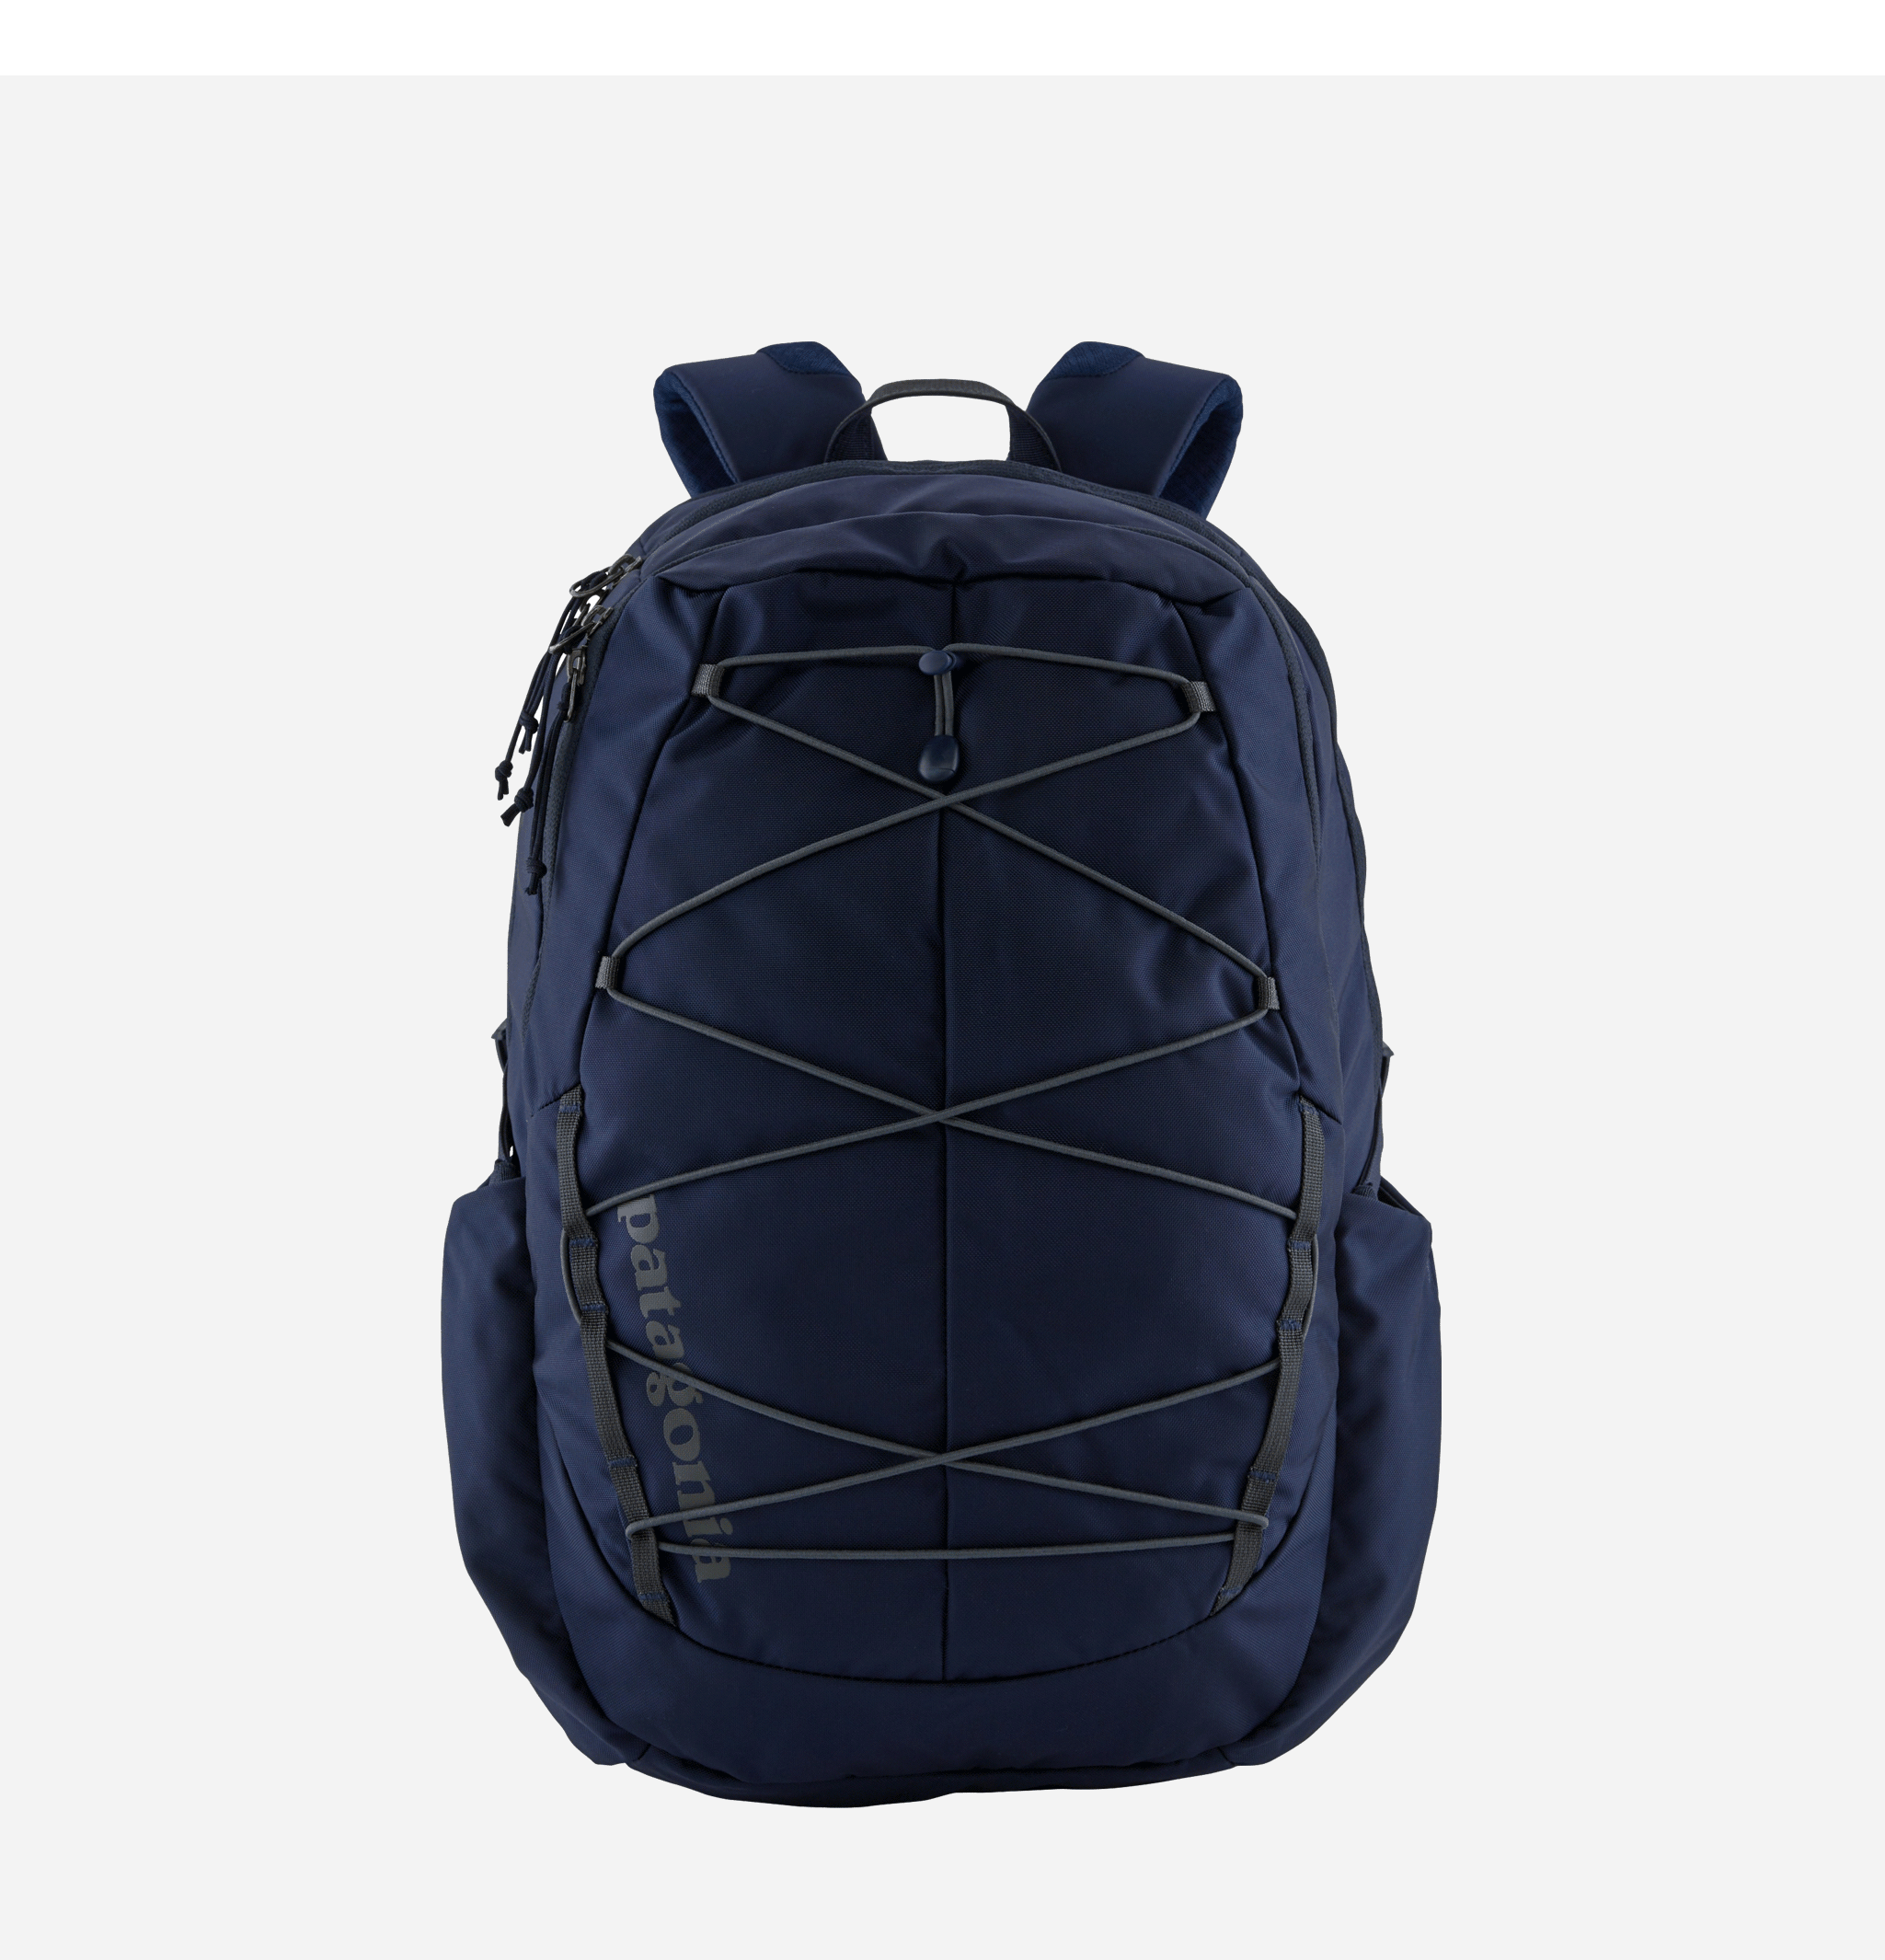 Chacacbuco Pack 30 L Navy